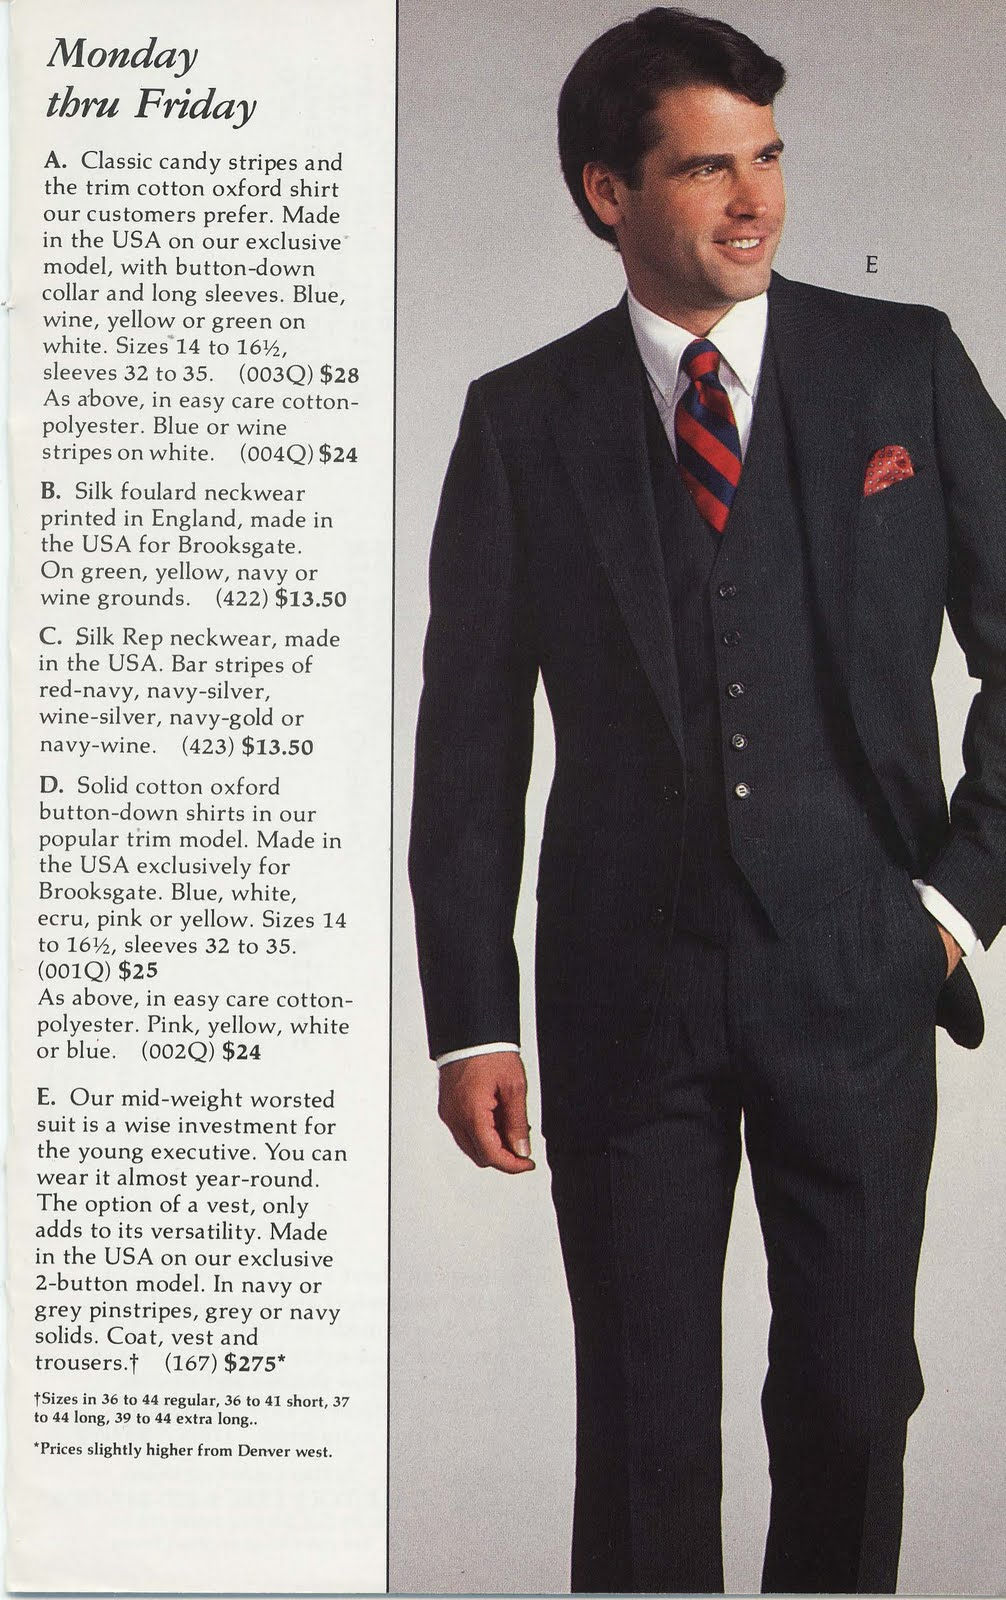 the trad selling suits